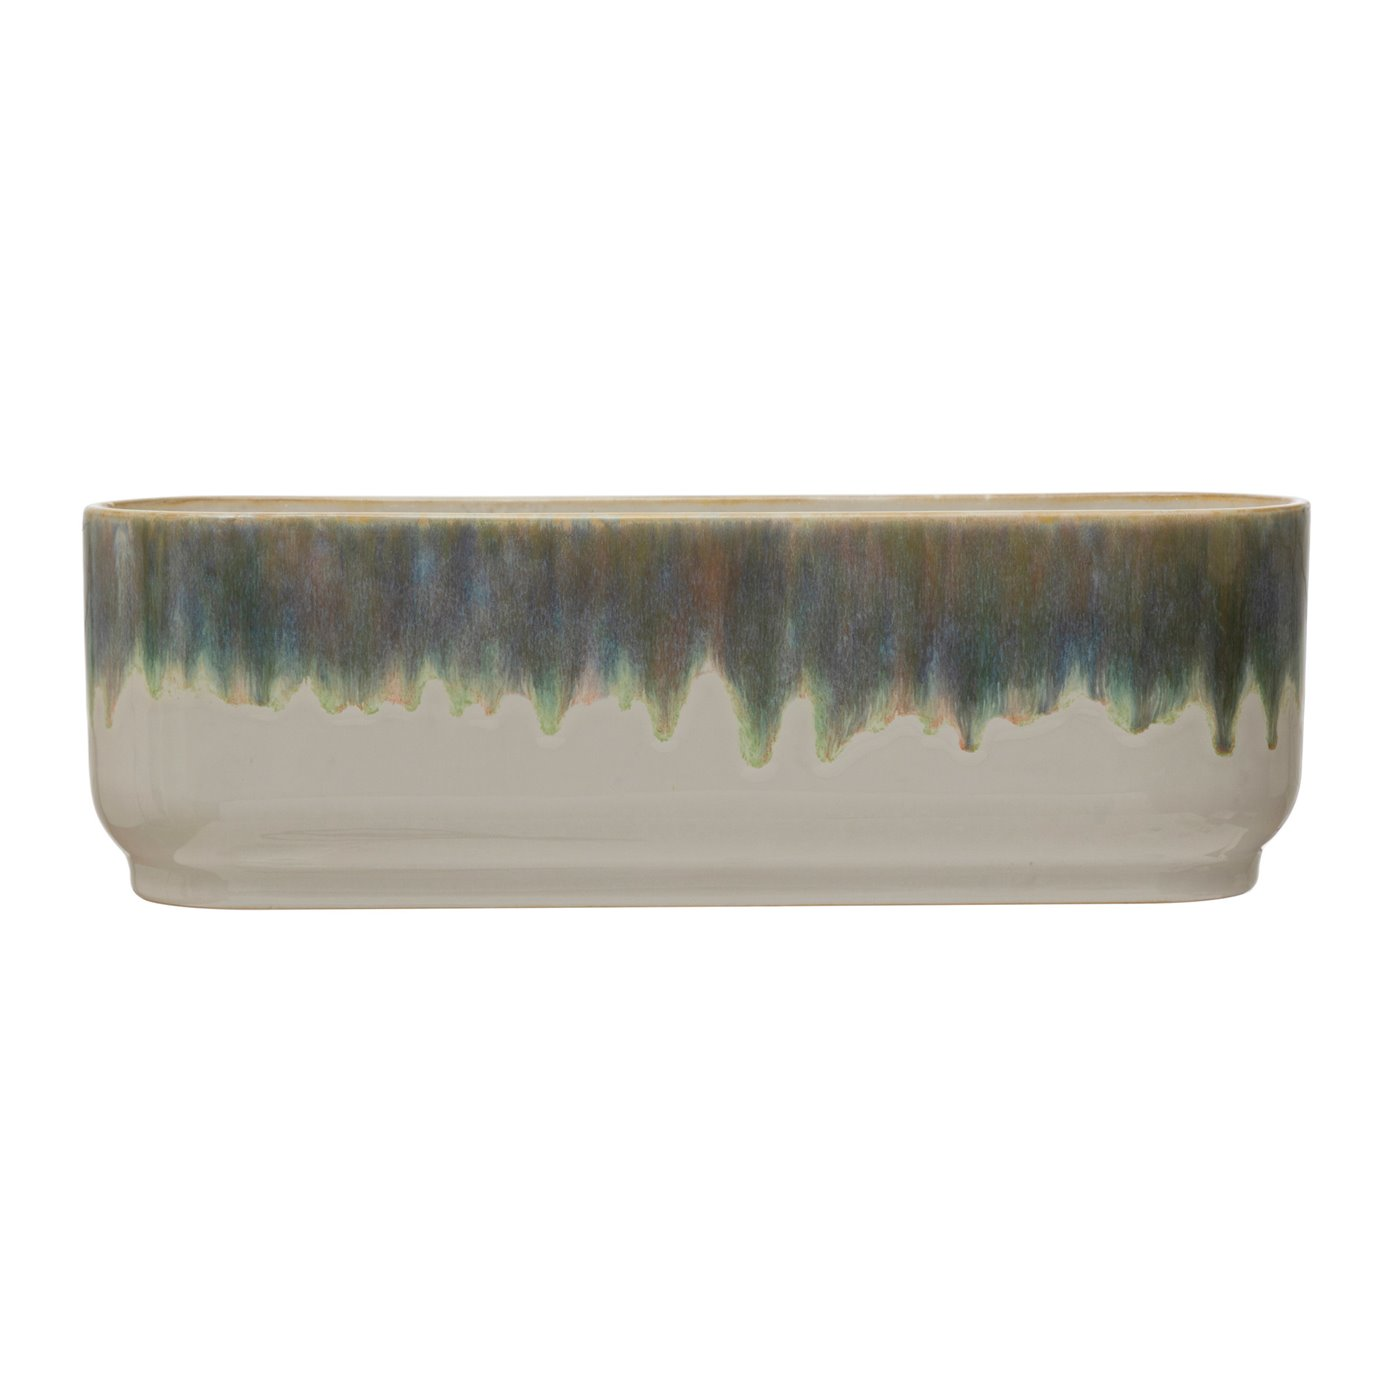 Stoneware Window Planter with 3 Sections, Reactive Glaze, Blue & White (Each One Will Vary)